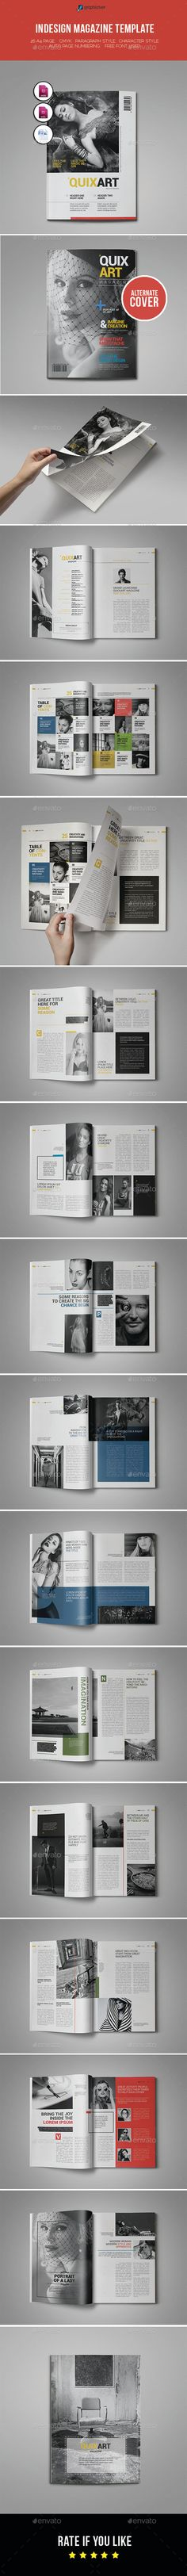 Indesign Magazine Template — InDesign INDD #color #magazine • Available here → https://graphicriver.net/item/indesign-magazine-template/11078975?ref=pxcr